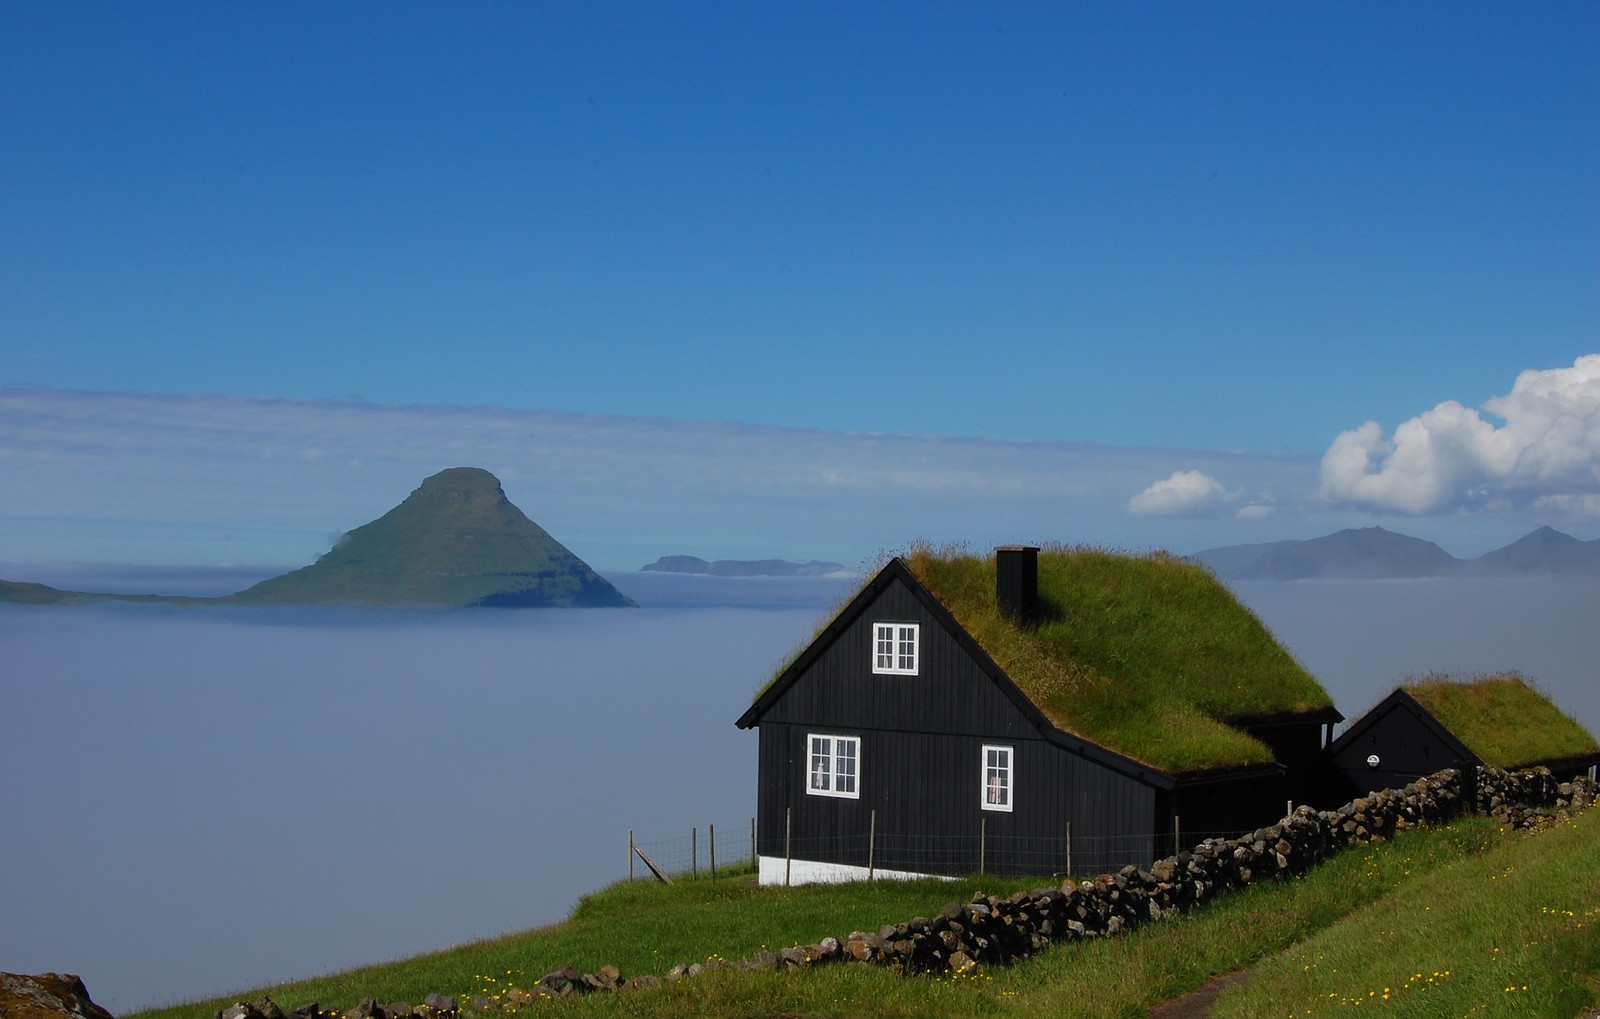 Faroe Islands Draw More Visitors For The Picturesque Nordic Scenery